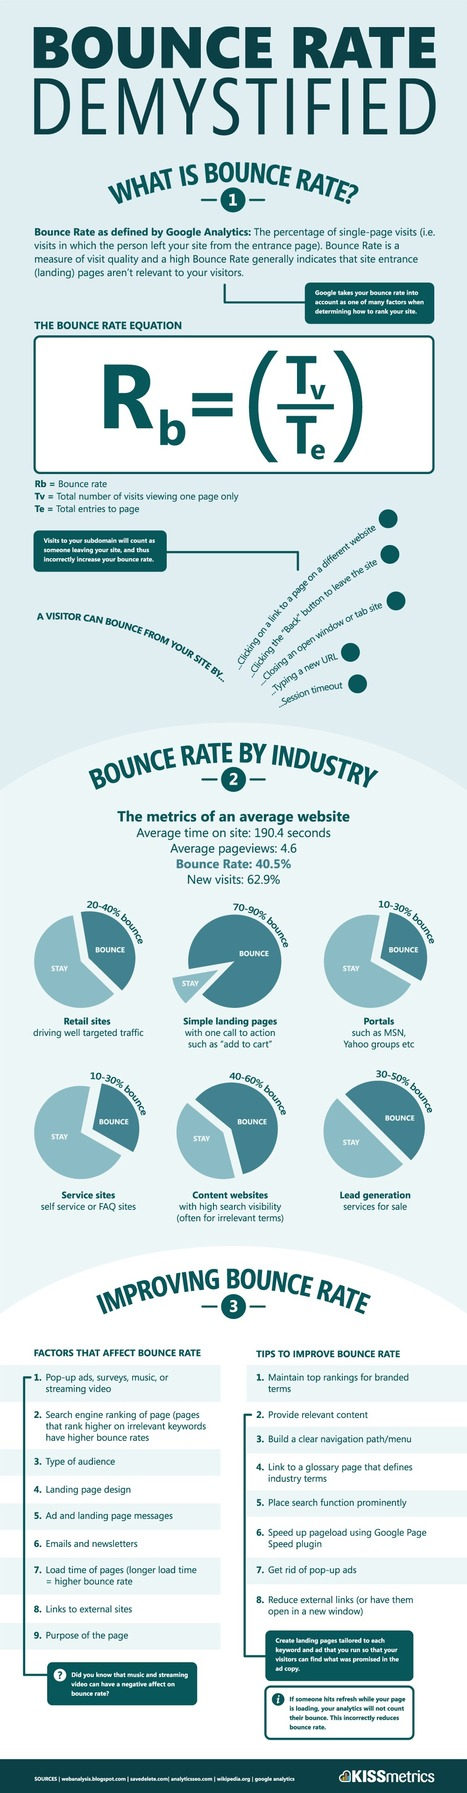 Bounce Rate Demystified, Kissmetrics | Marketing, PR & Communications | Scoop.it